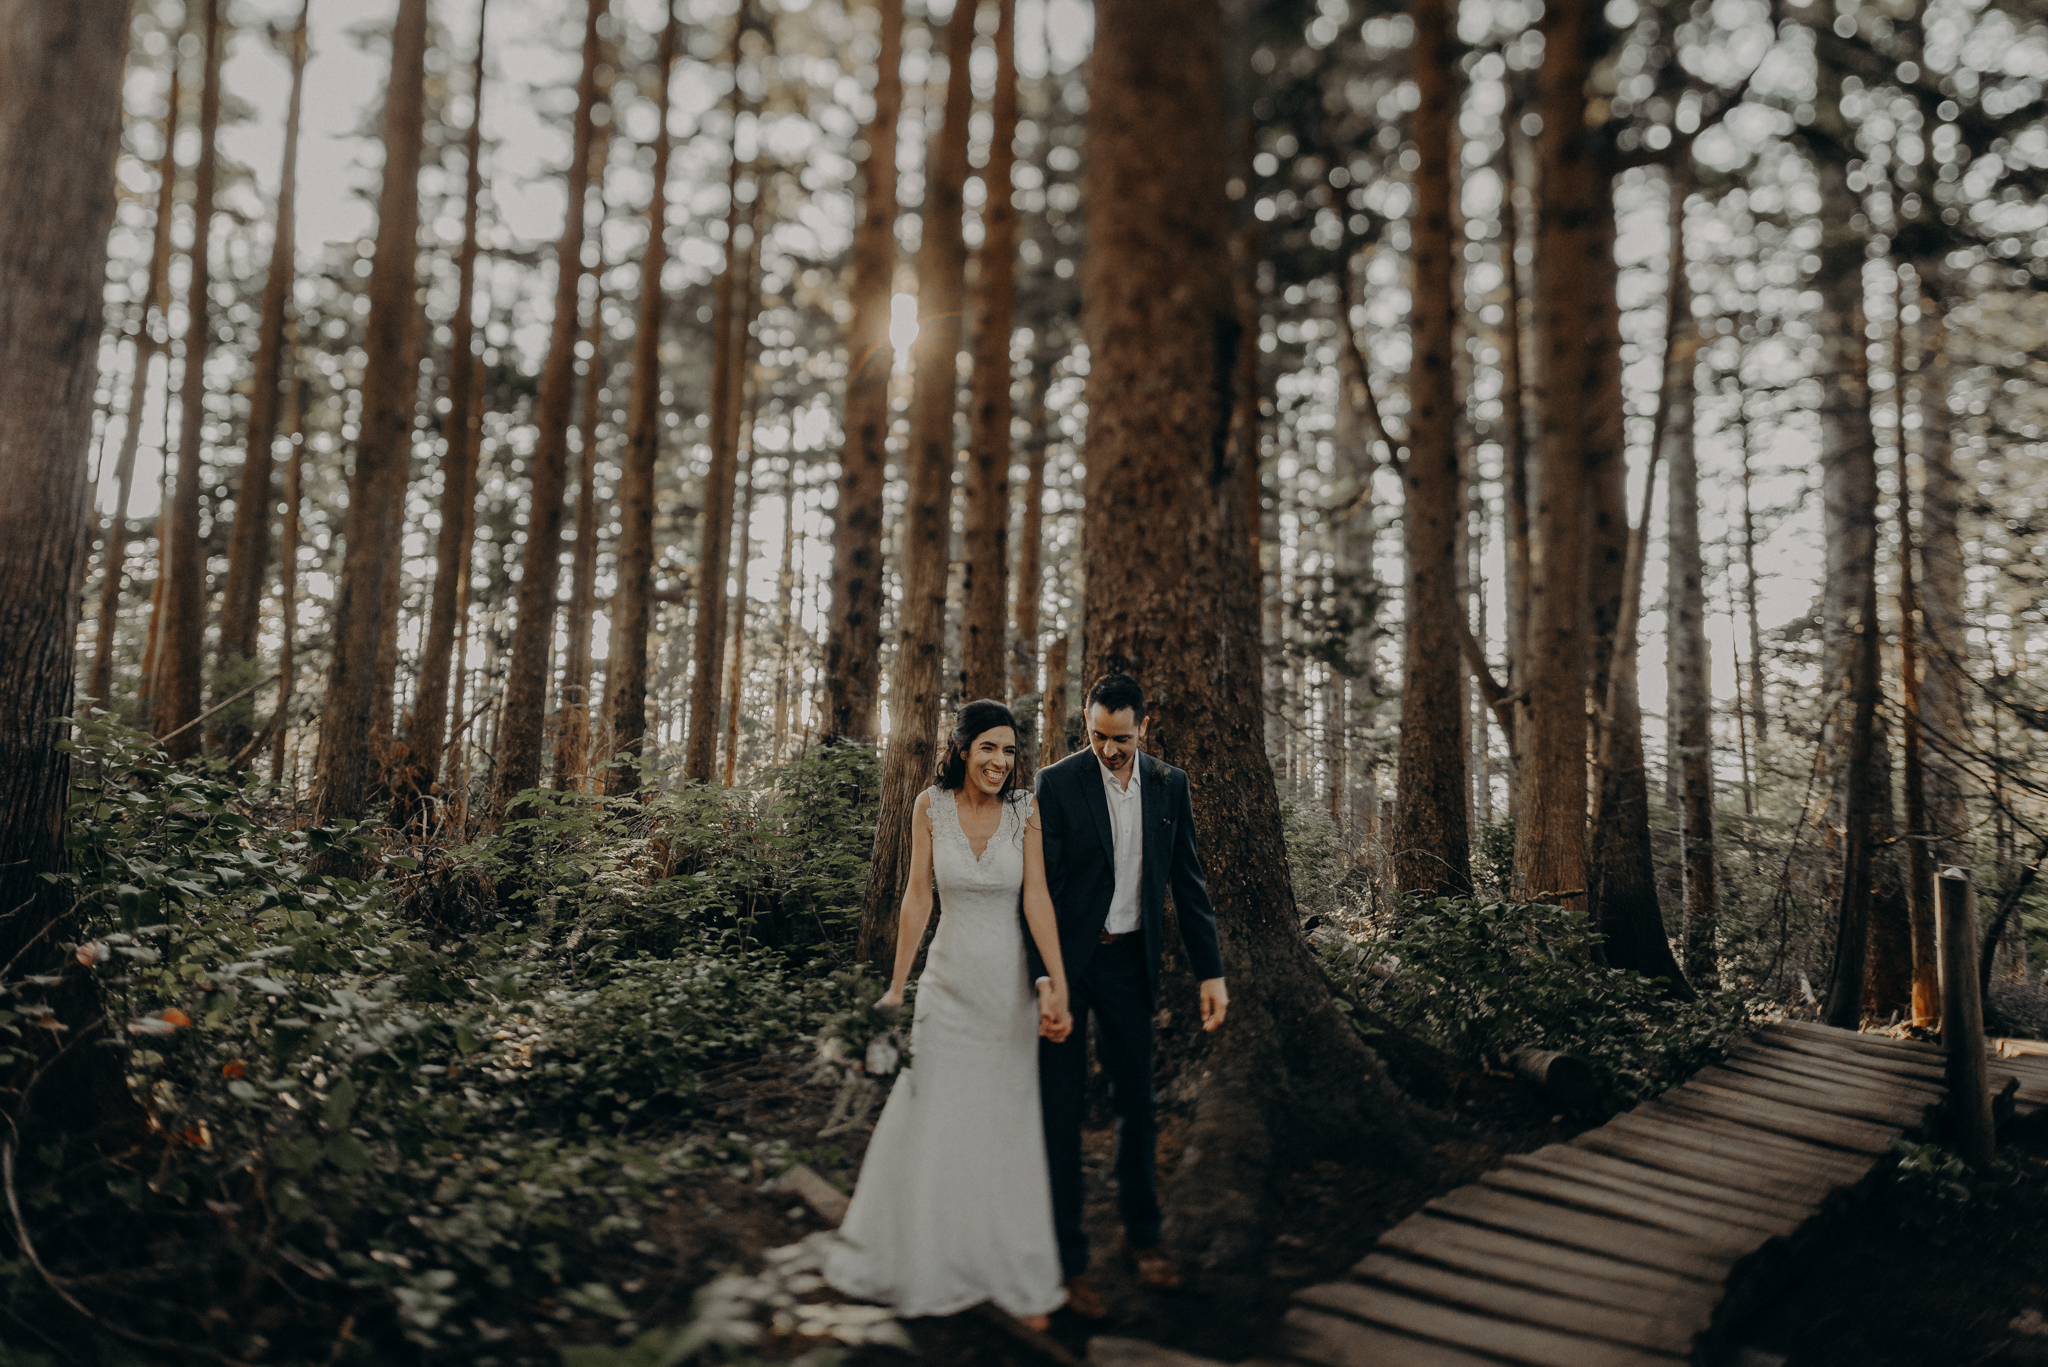 Isaiah + Taylor Photography - Cape Flattery Elopement, Olympia National Forest Wedding Photographer-100.jpg